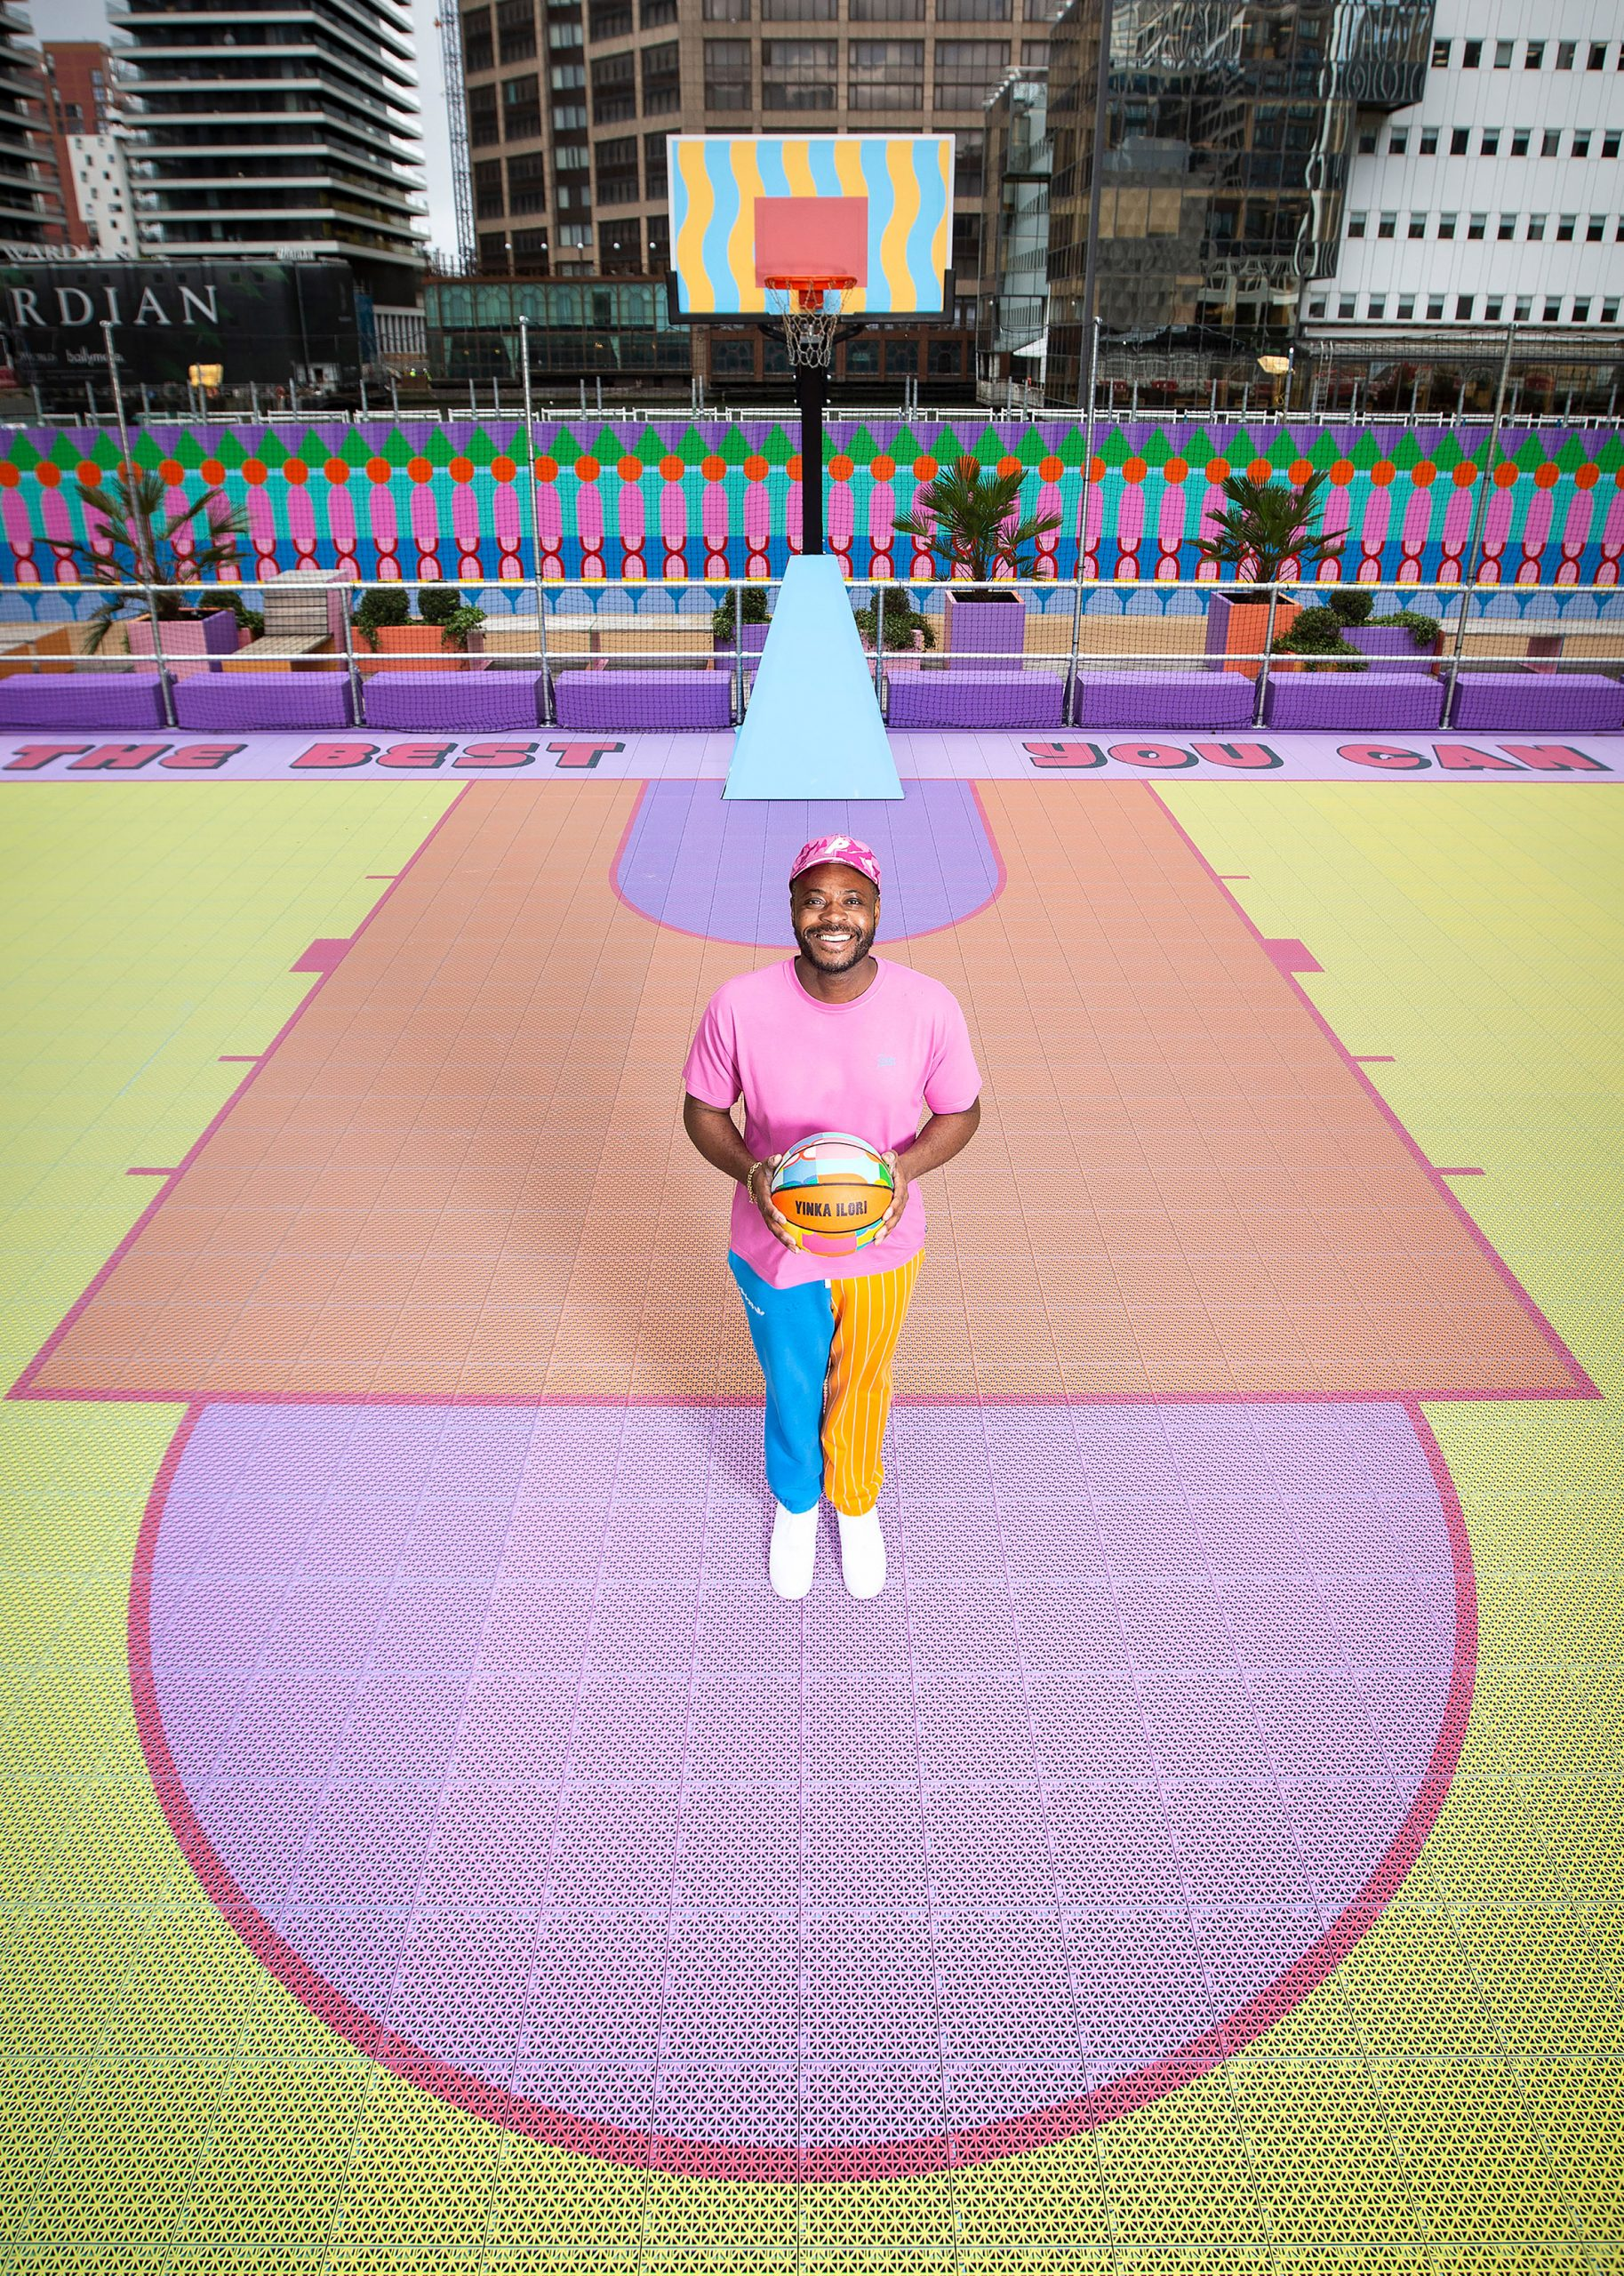 Aerial view of Yinka Ilori on colourful Canary Wharf basketball court